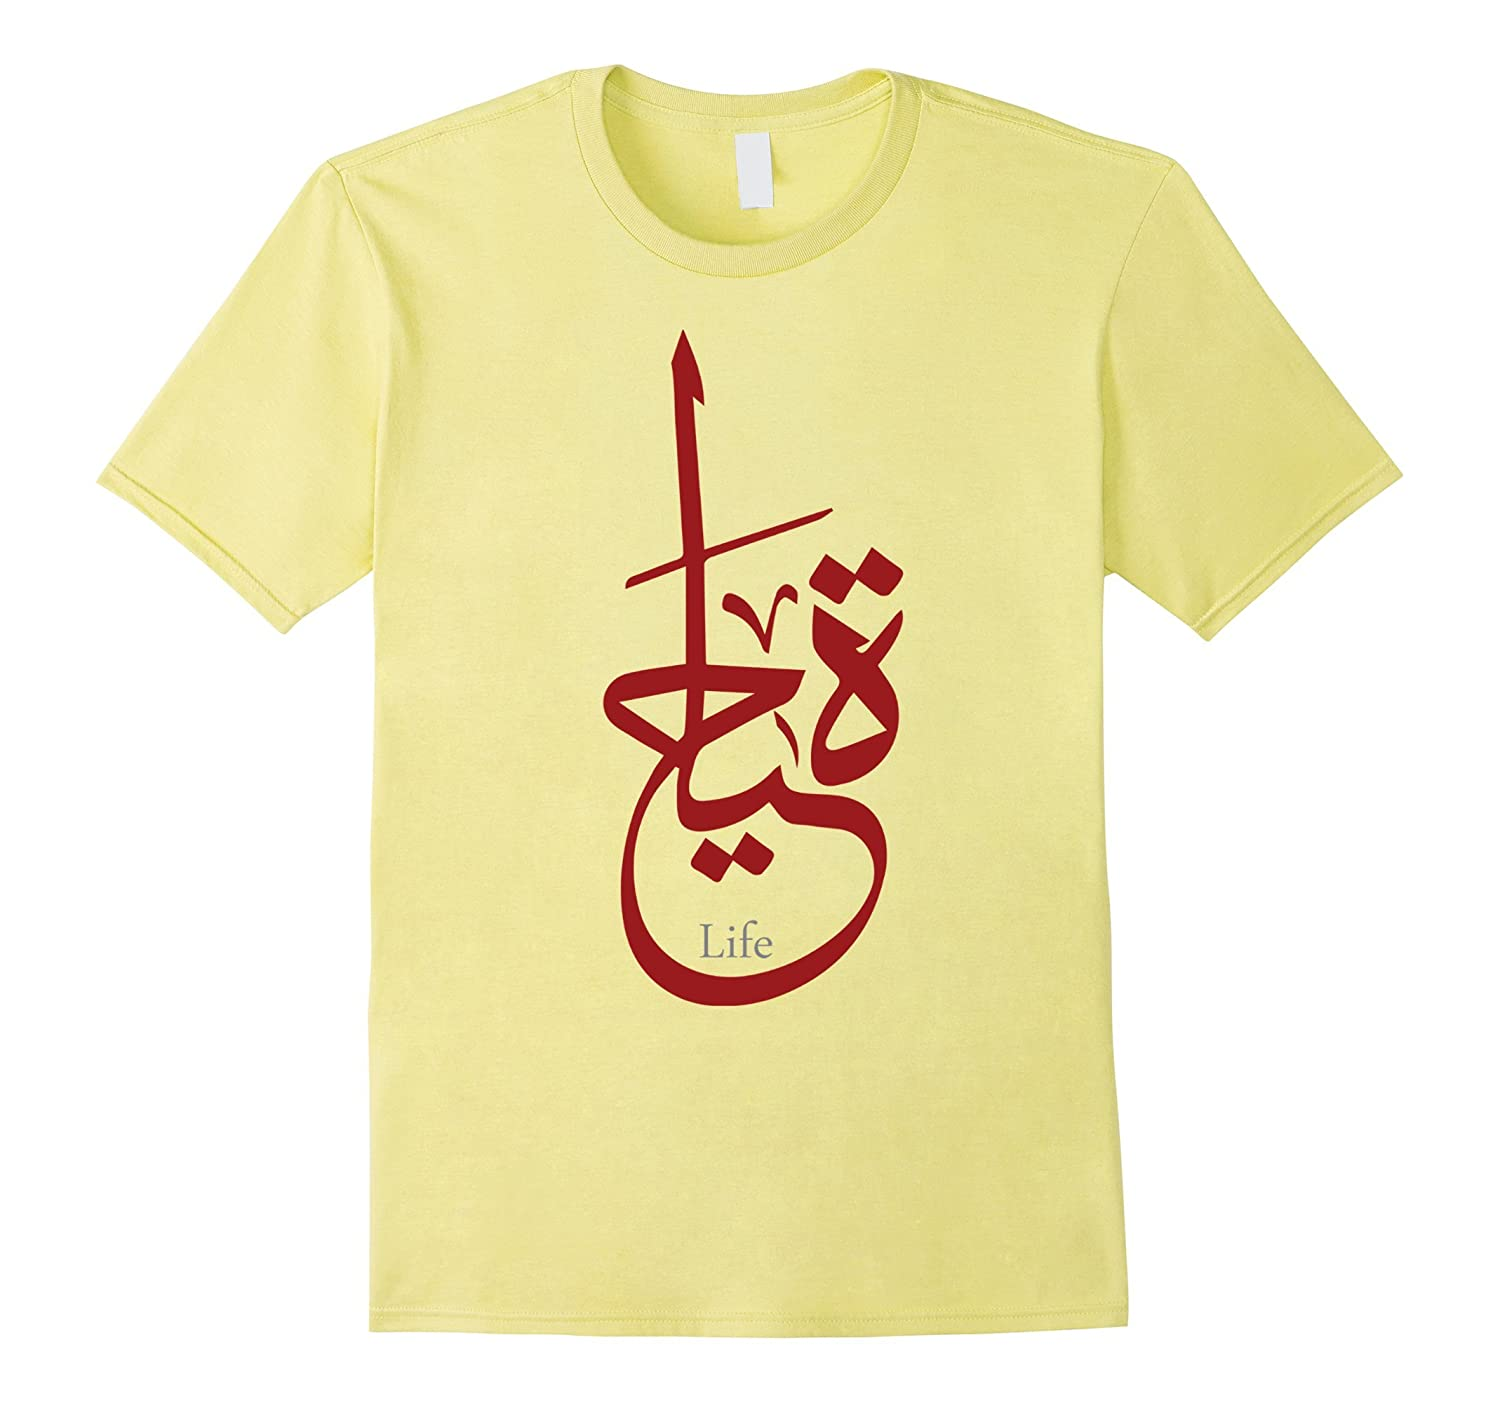 T shirt arabic calligraphy life rt rateeshirt Arabic calligraphy shirt